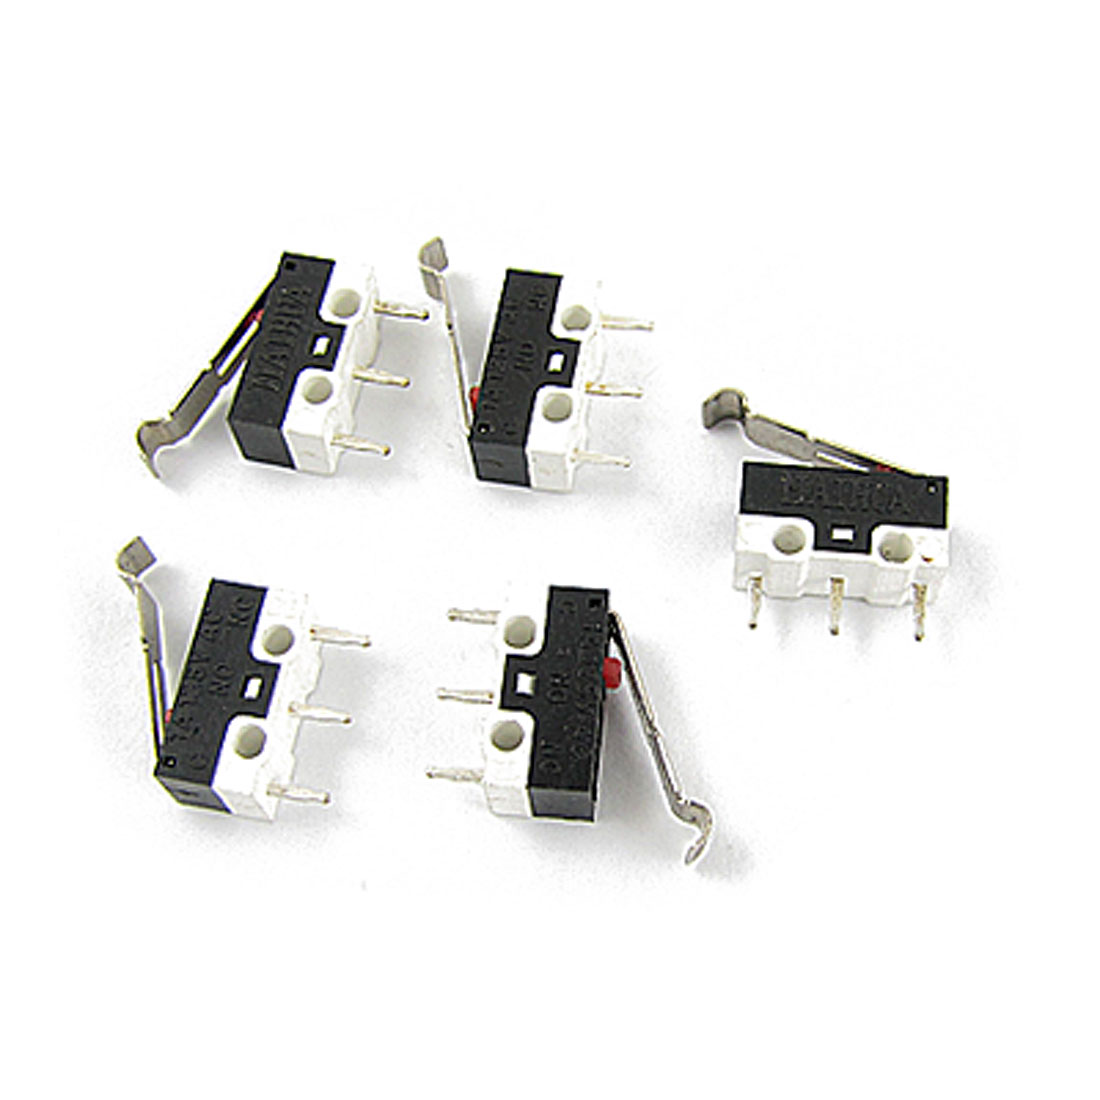 AC 125V 1A SPDT Subminiature Micro Lever Switch 5 Pcs